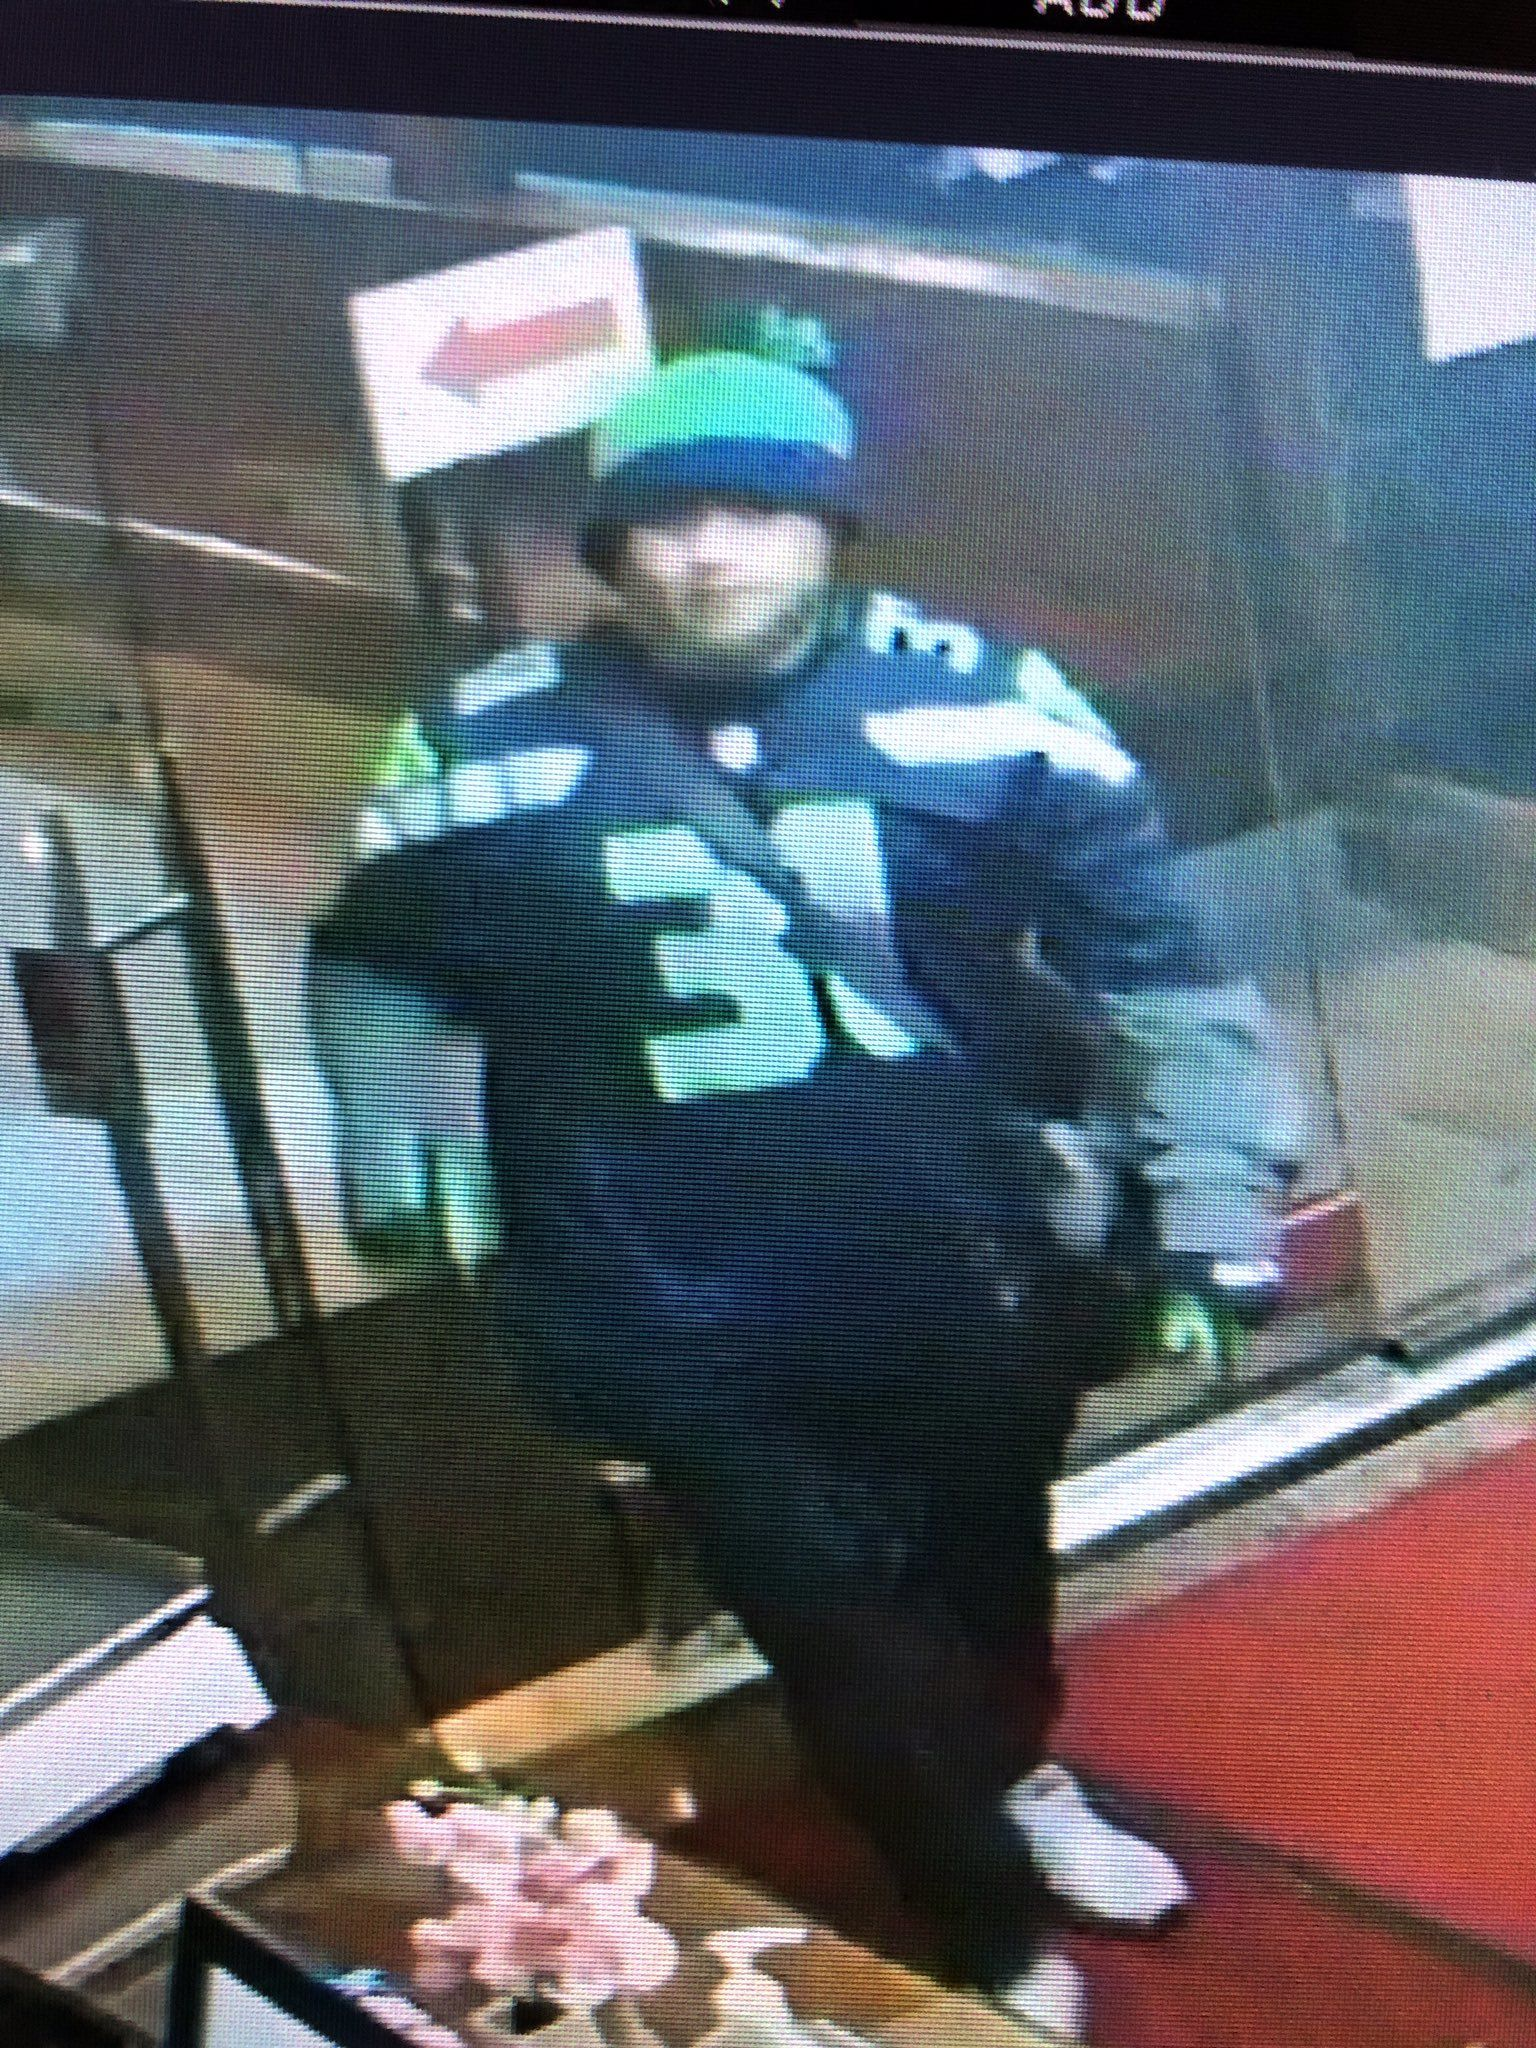 Man decked in Seahawks garb sought in armed robbery (Photo via Tukwila Police)